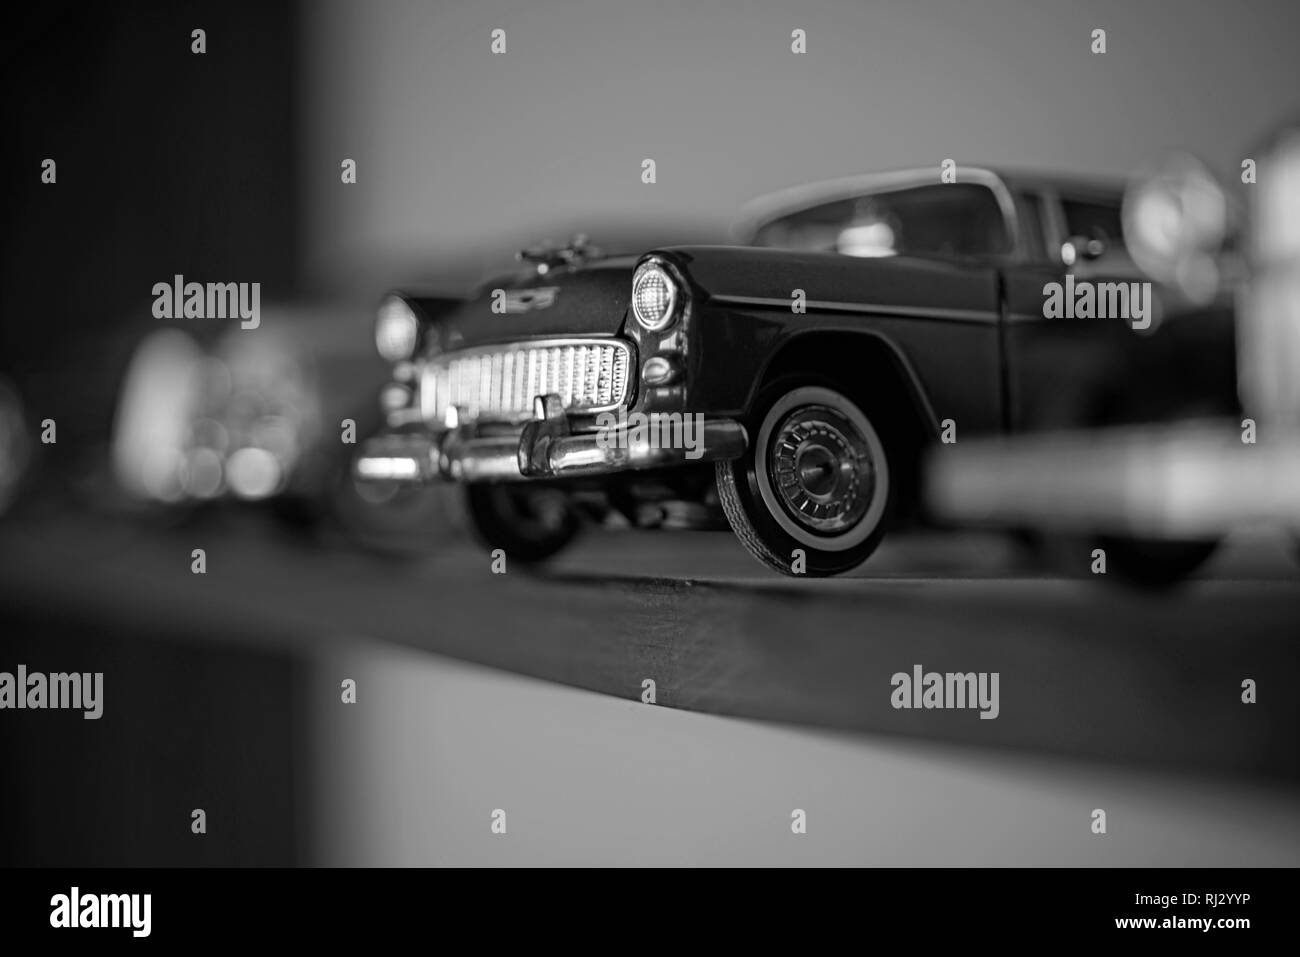 A close attention to the details. Retro styled cars. Toy cars with retro design. Retro car models on shelf. Classic model vehicles or toy vehicles - Stock Image